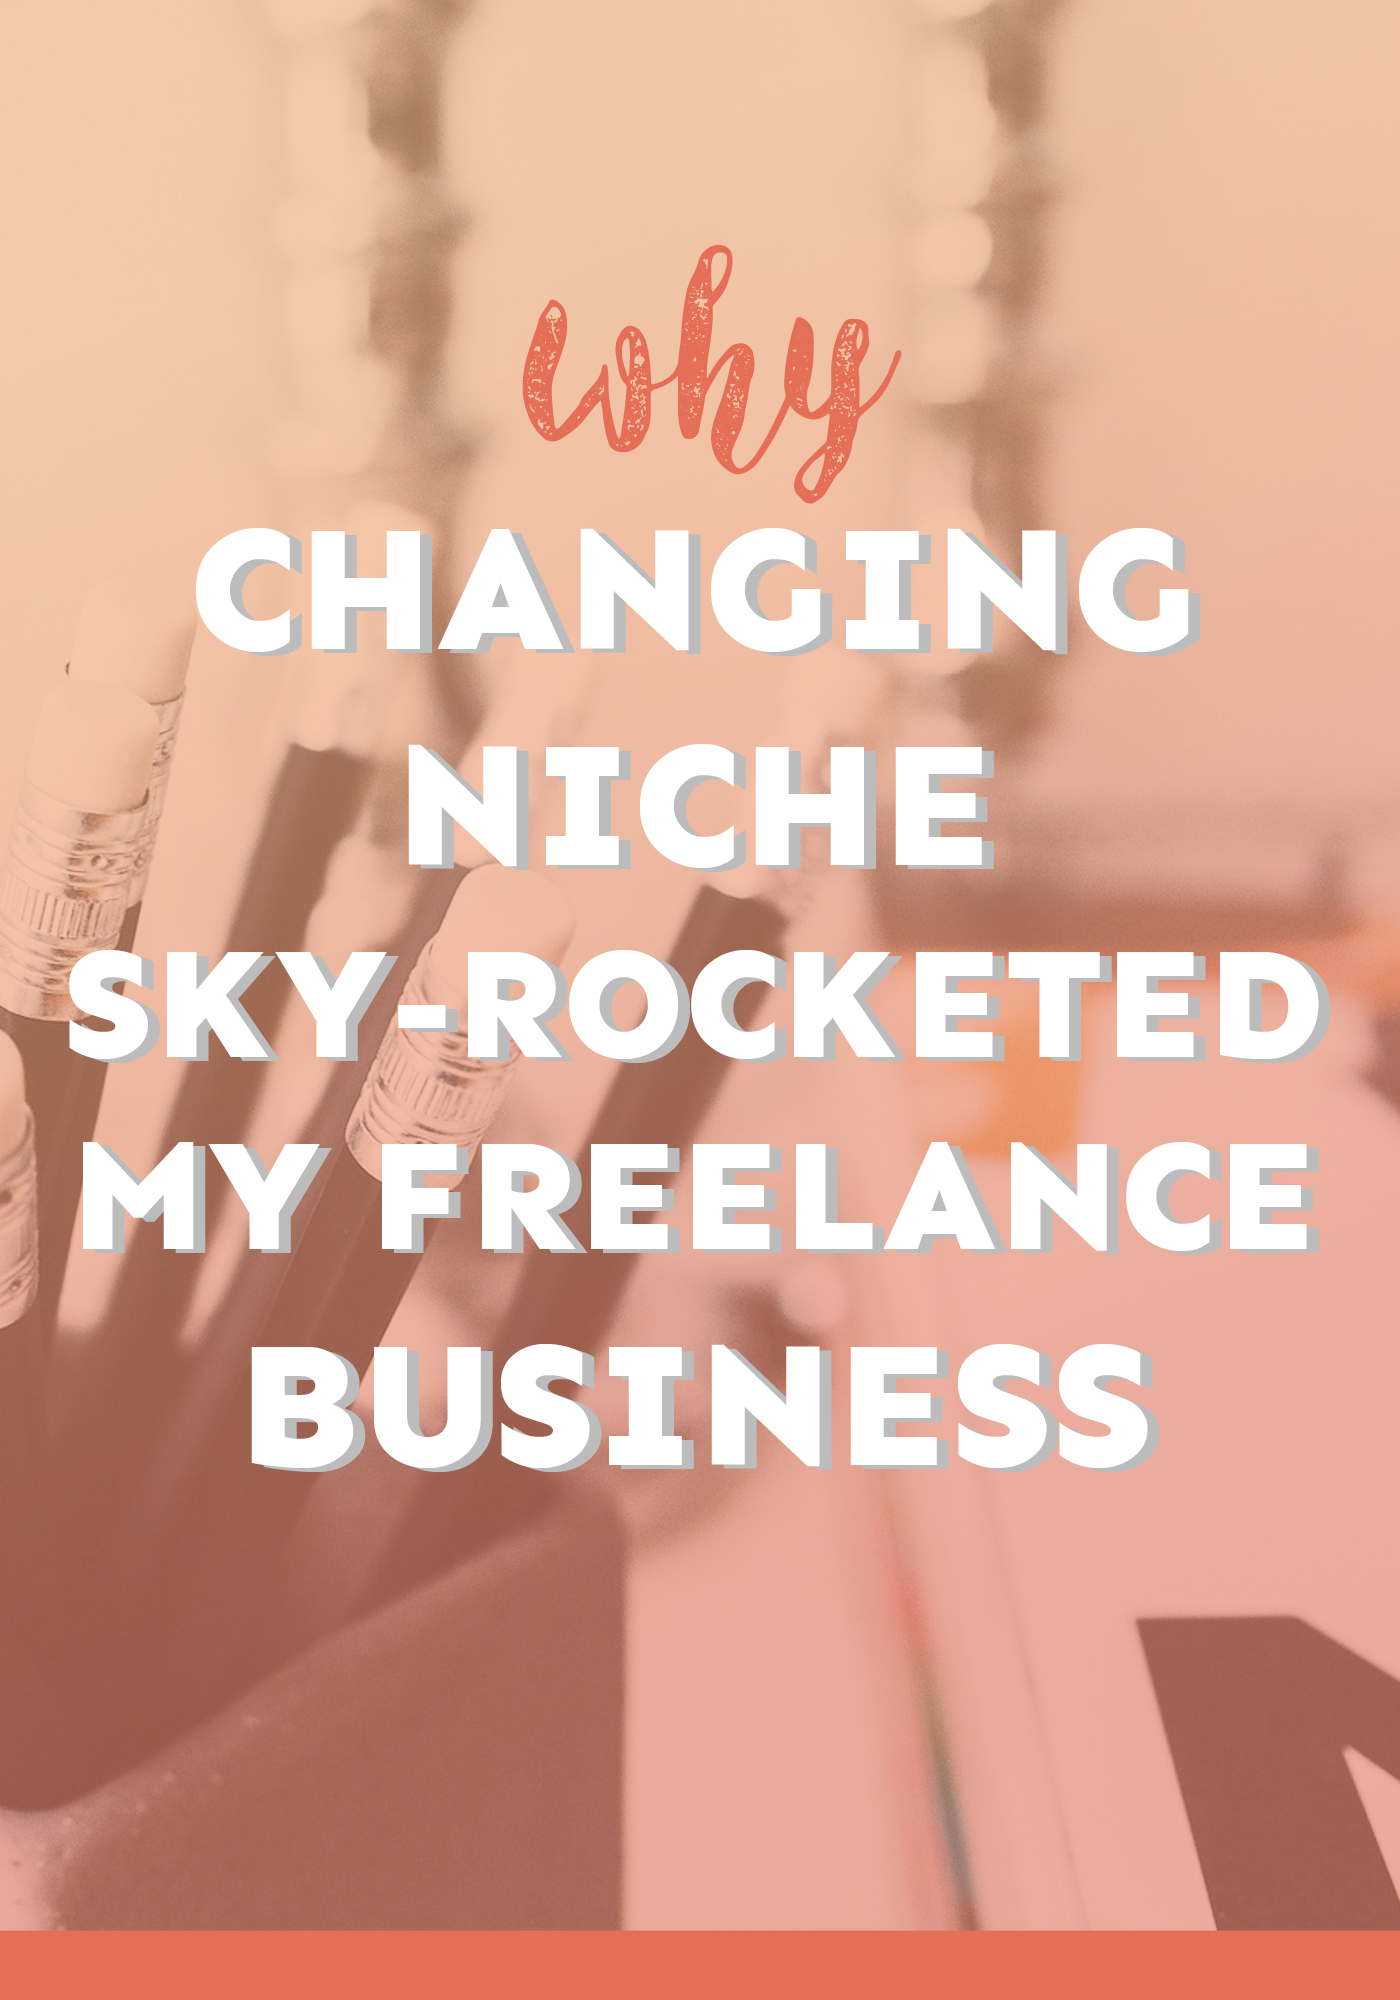 Thinking about changing niche but worried how it'll affect your business? Worry not! Here's how it sky-rocketed my freelance business!